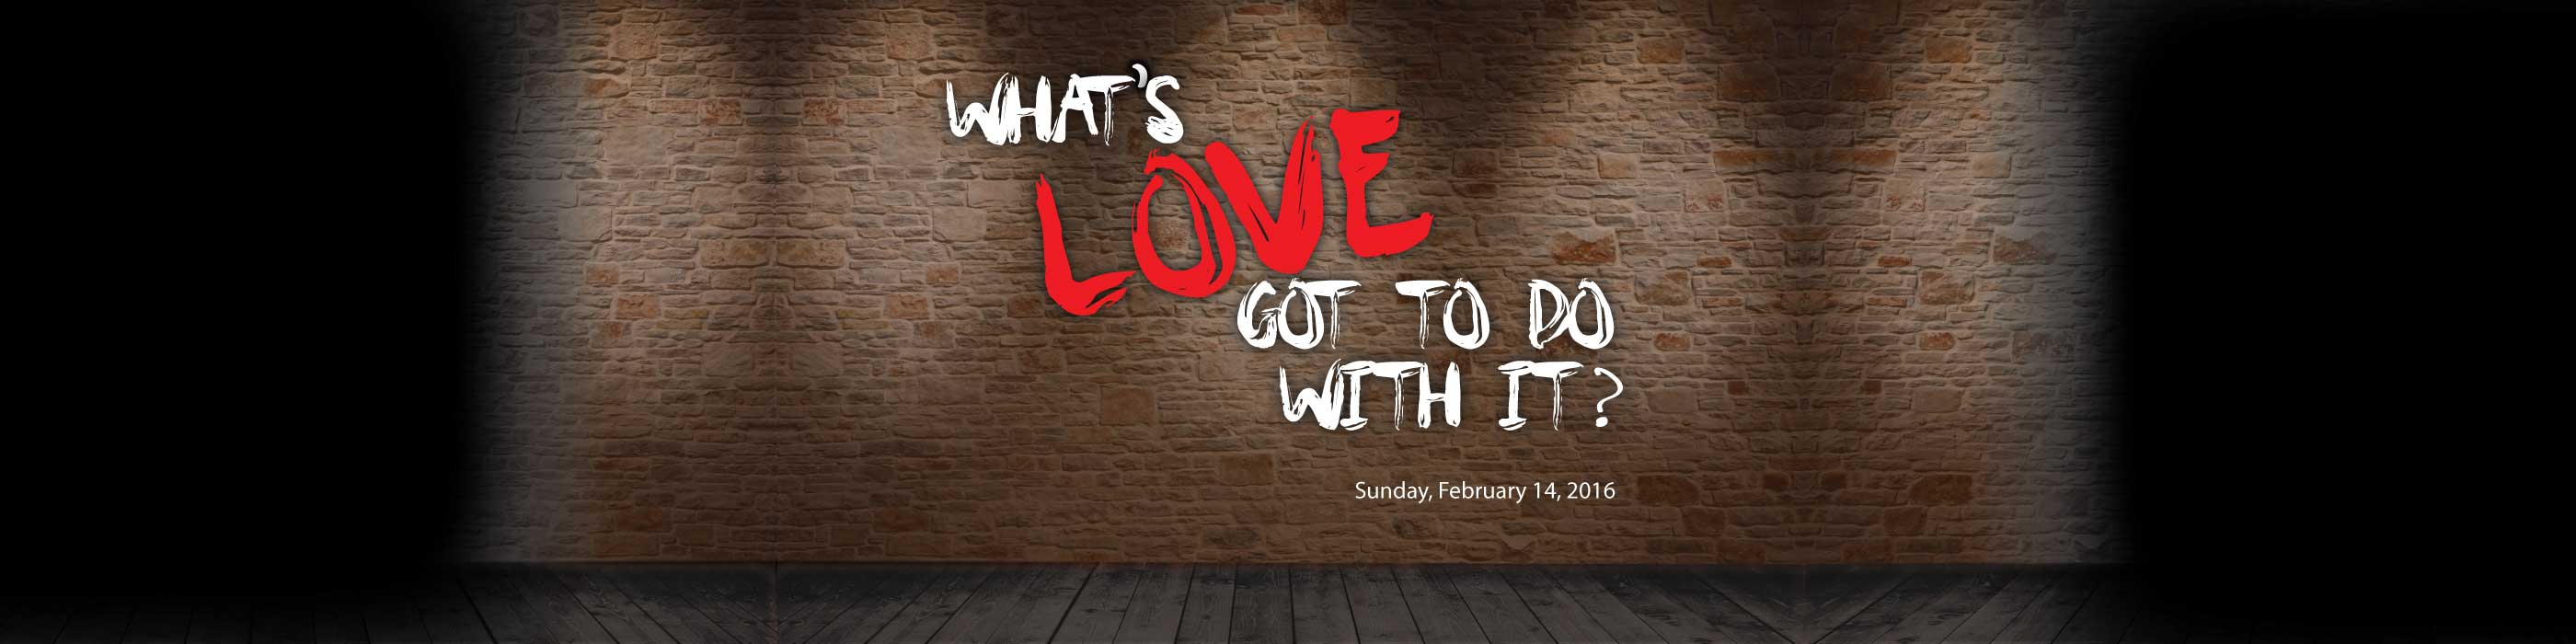 Summit-Whats-Love-Got-To-Do-With-It-021416-Final_2800x700